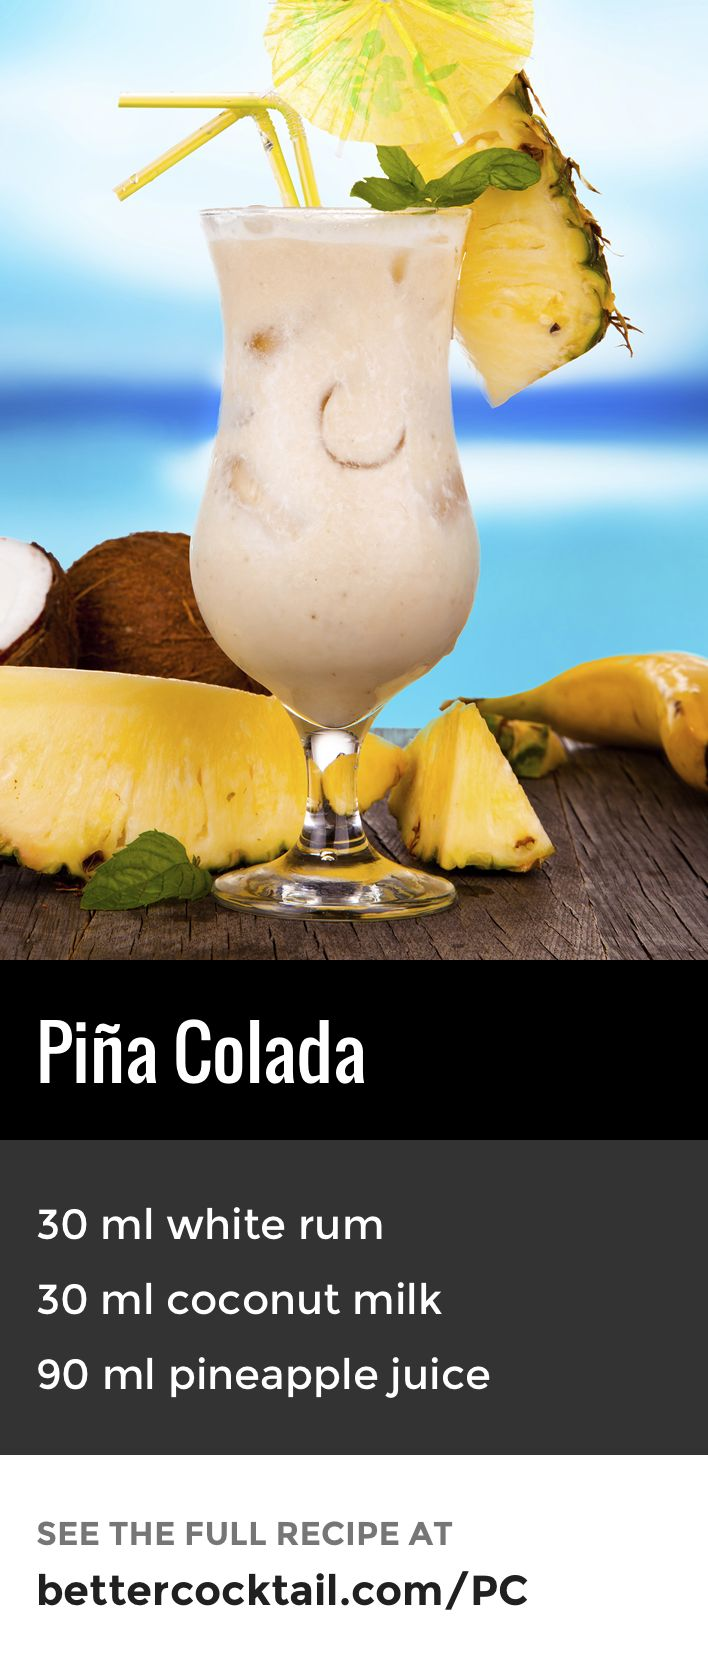 Piña Colada, the national drink of Puerto Rico since 1978 and enjoyed on beaches and sunbeds around the world. A complimentary blend of rum, coconut and pineapple combine beautifully. Served in a Poco Grande glass (also known as a hurricane glass) and gar